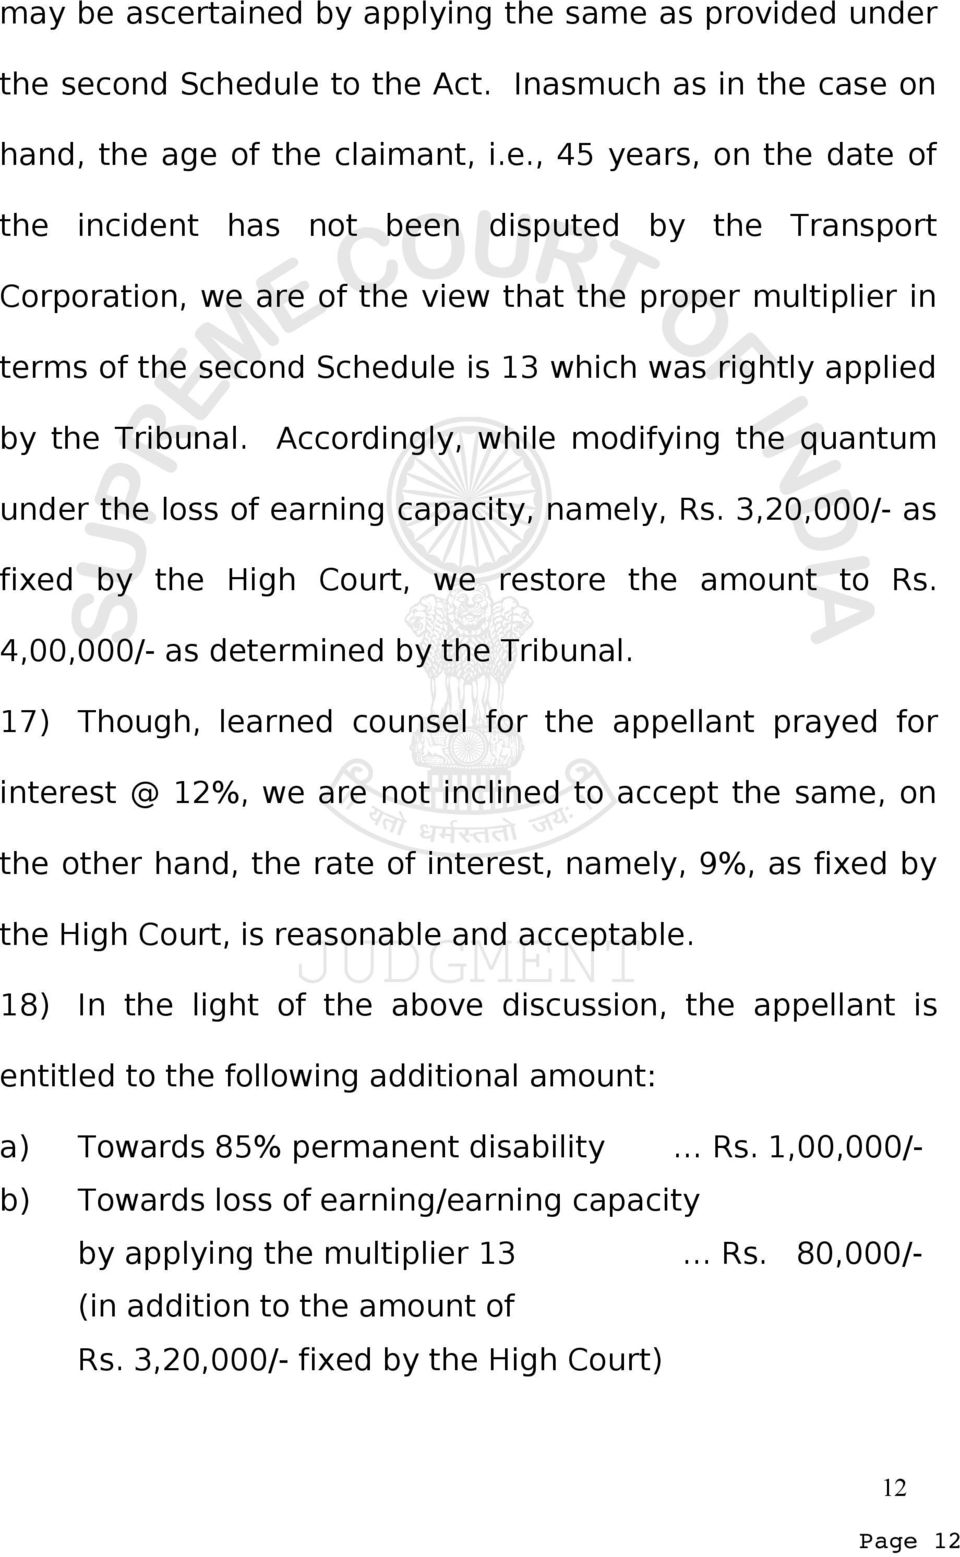 disputed by the Transport Corporation, we are of the view that the proper multiplier in terms of the second Schedule is 13 which was rightly applied by the Tribunal.